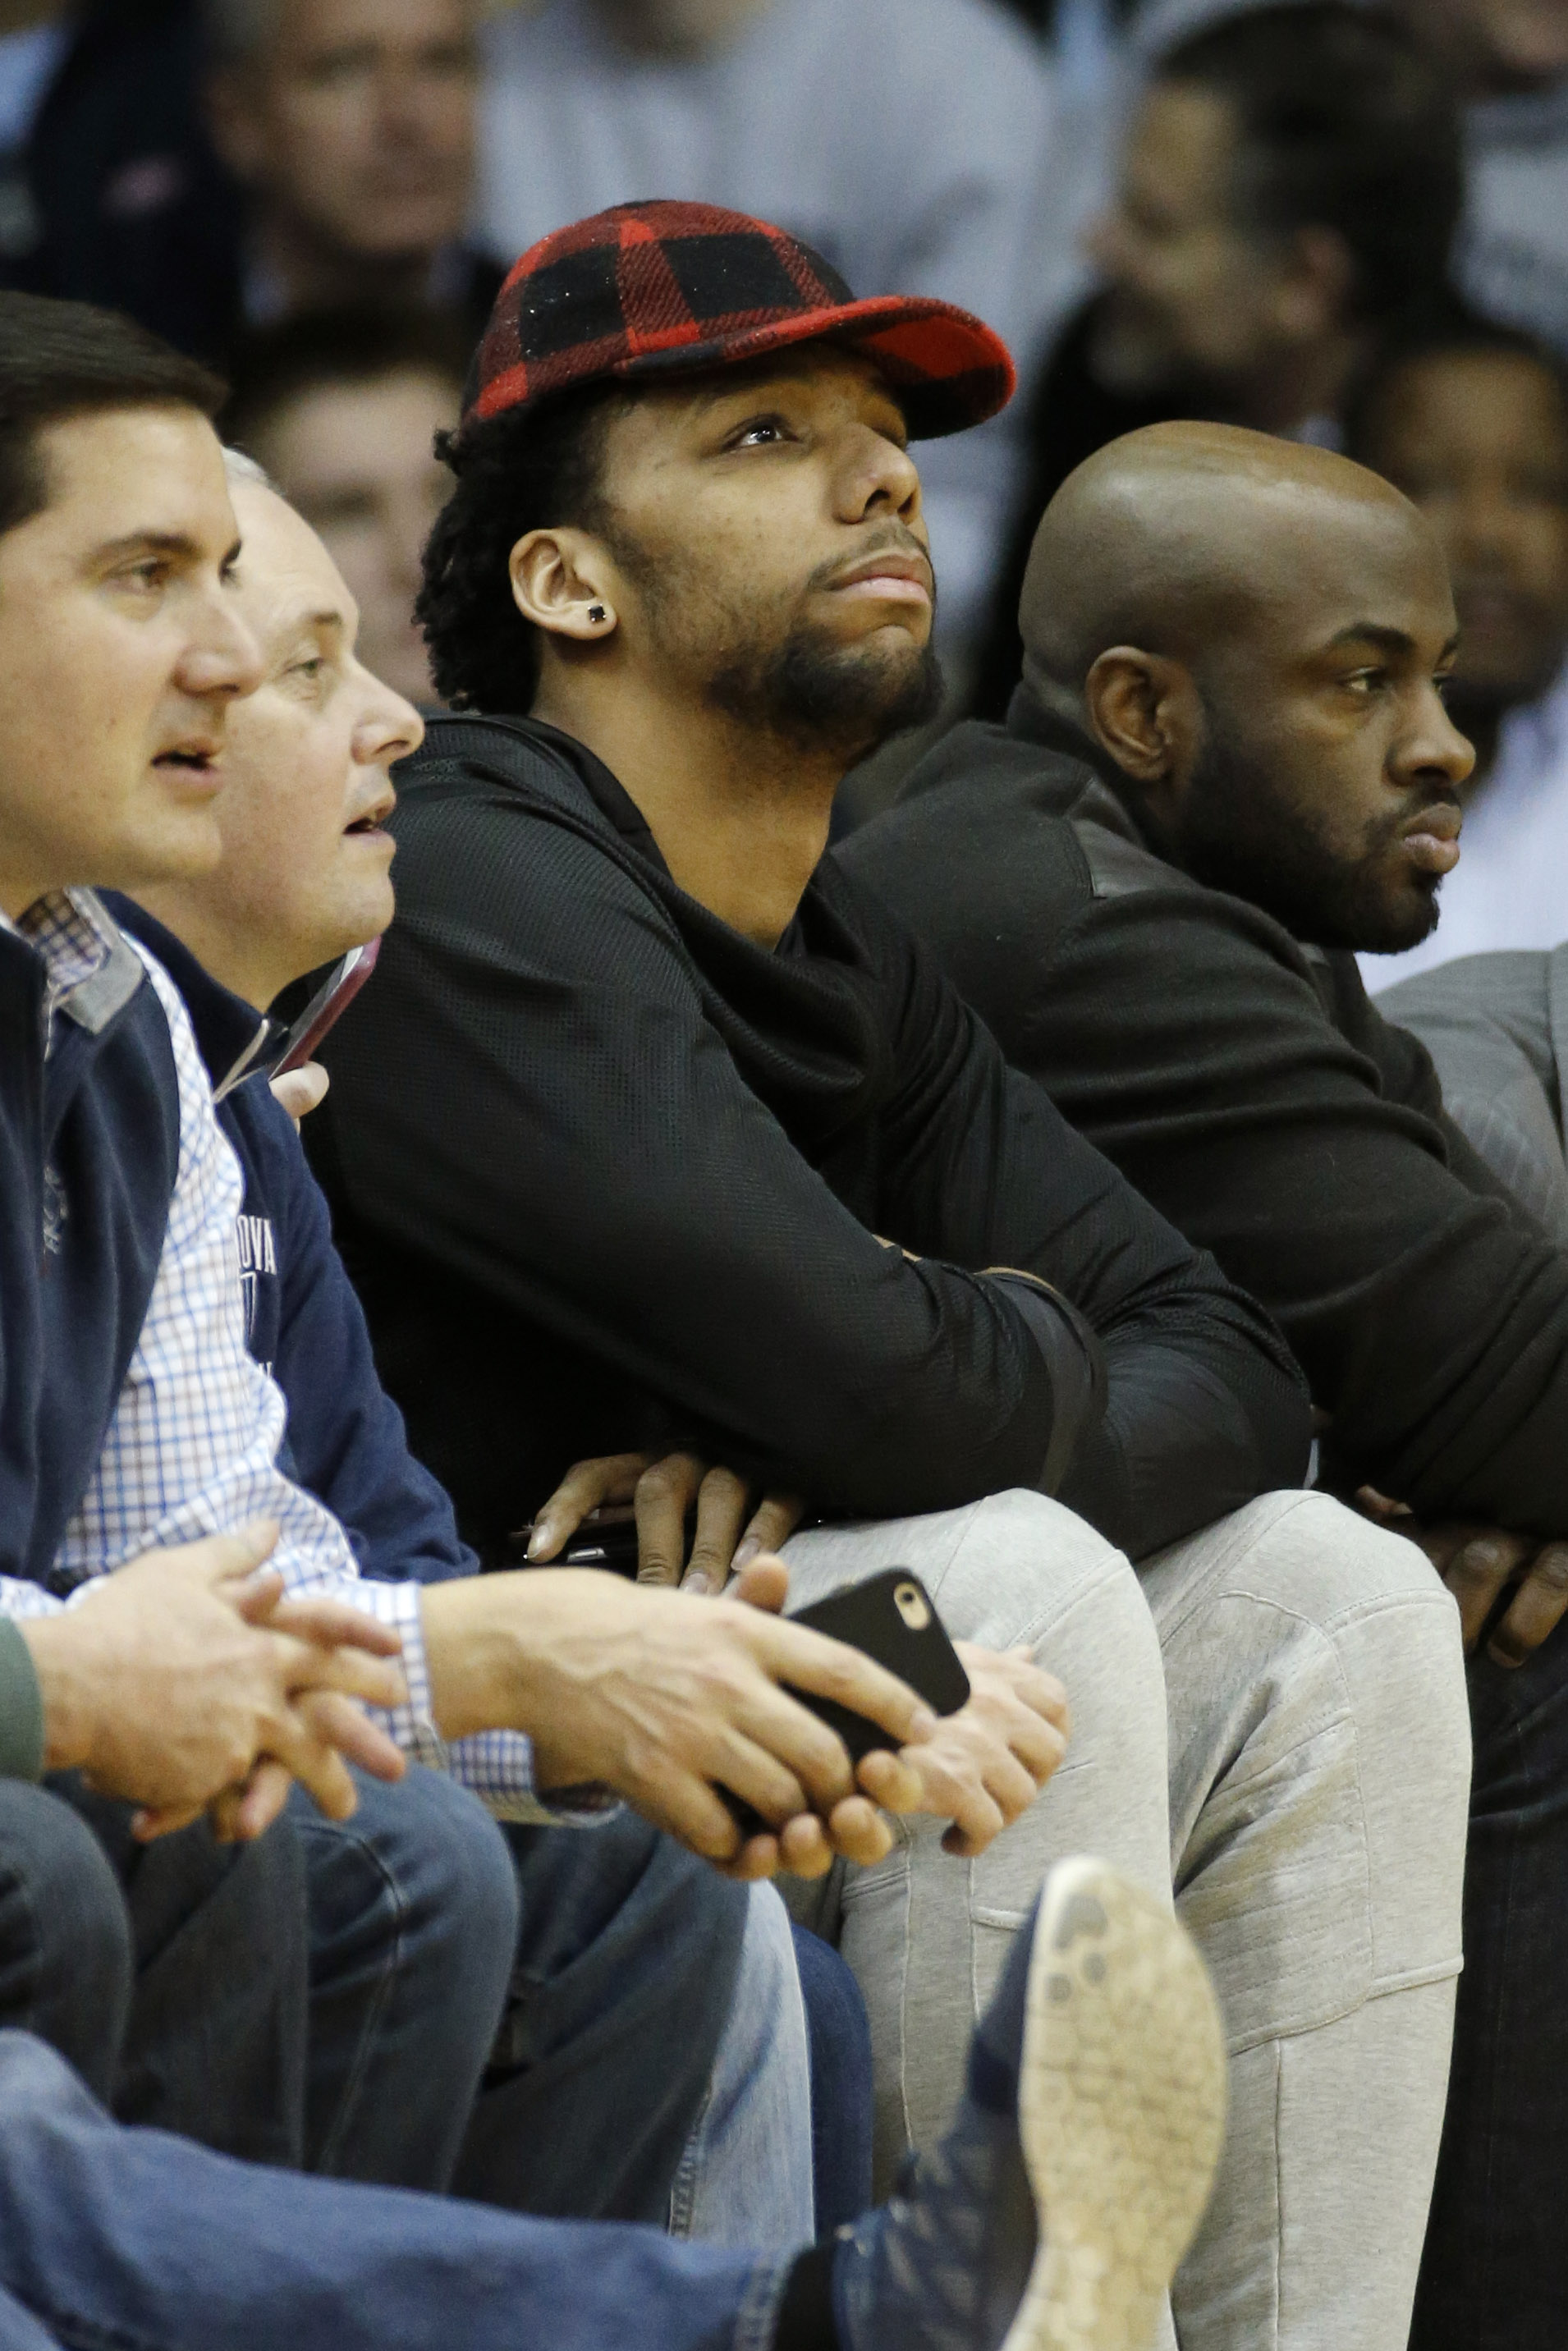 Philadelphia 76ers' Jahlil Okafor watches the first half of an NCAA college basketball game between Villanova and DePaul, Tuesday, March 1, 2016, in Philadelphia. (AP Photo/Matt Slocum)